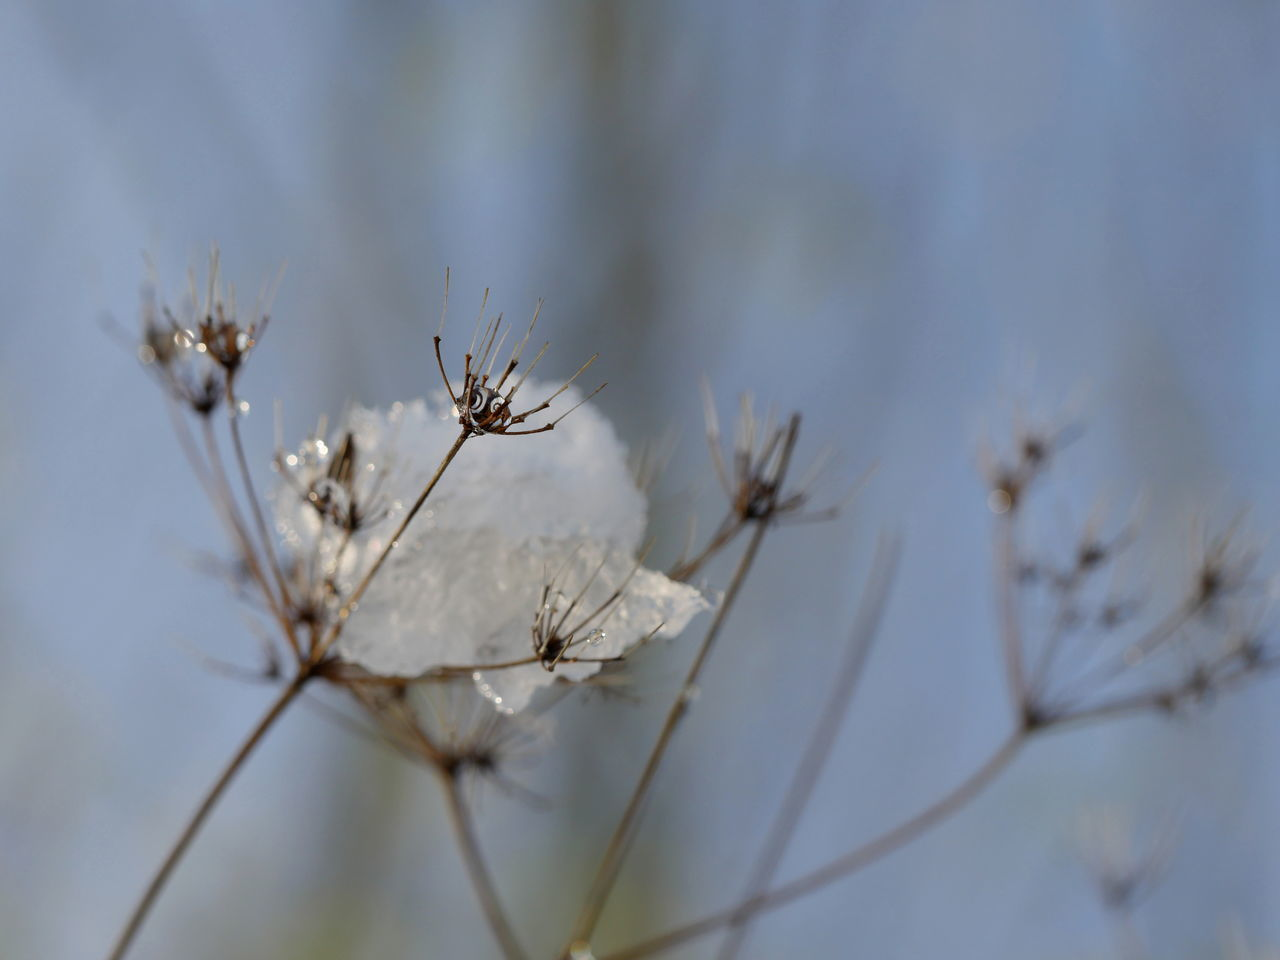 Beauty In Nature Blurred Background Cold Temperature Dried Plant Drops Filigran Fragility Macro Nature No People Outdoors Perspective Sky Snow Wintertime From My Point Of View Close-up Frozen Nature Check This Out Close Up Taking Photos Frosty Reflection